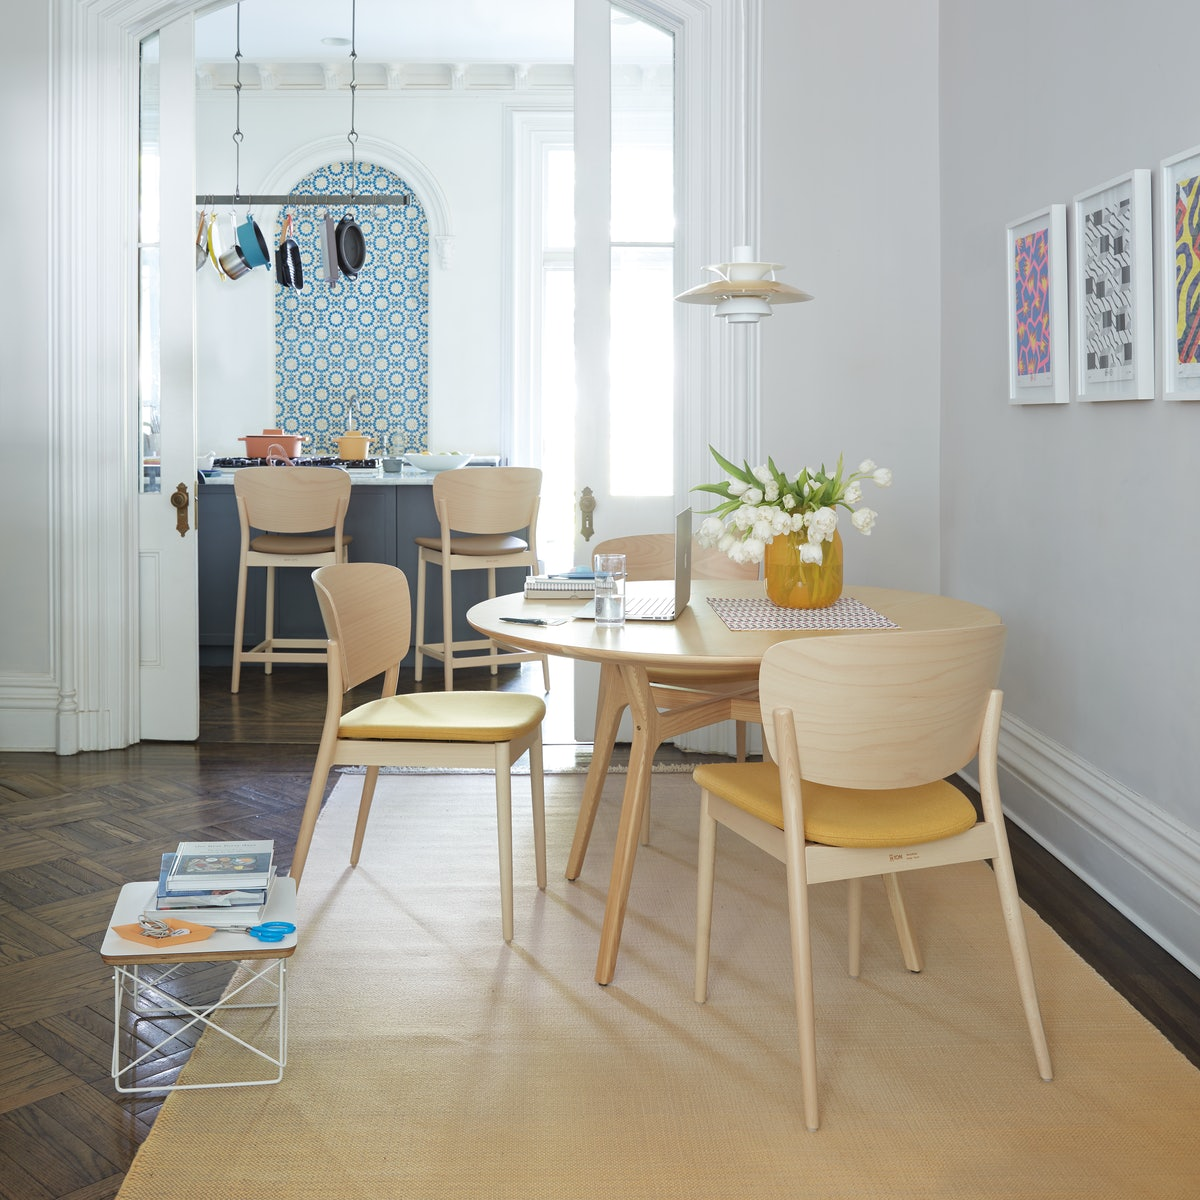 Valencia Chair with Ren Dining Table